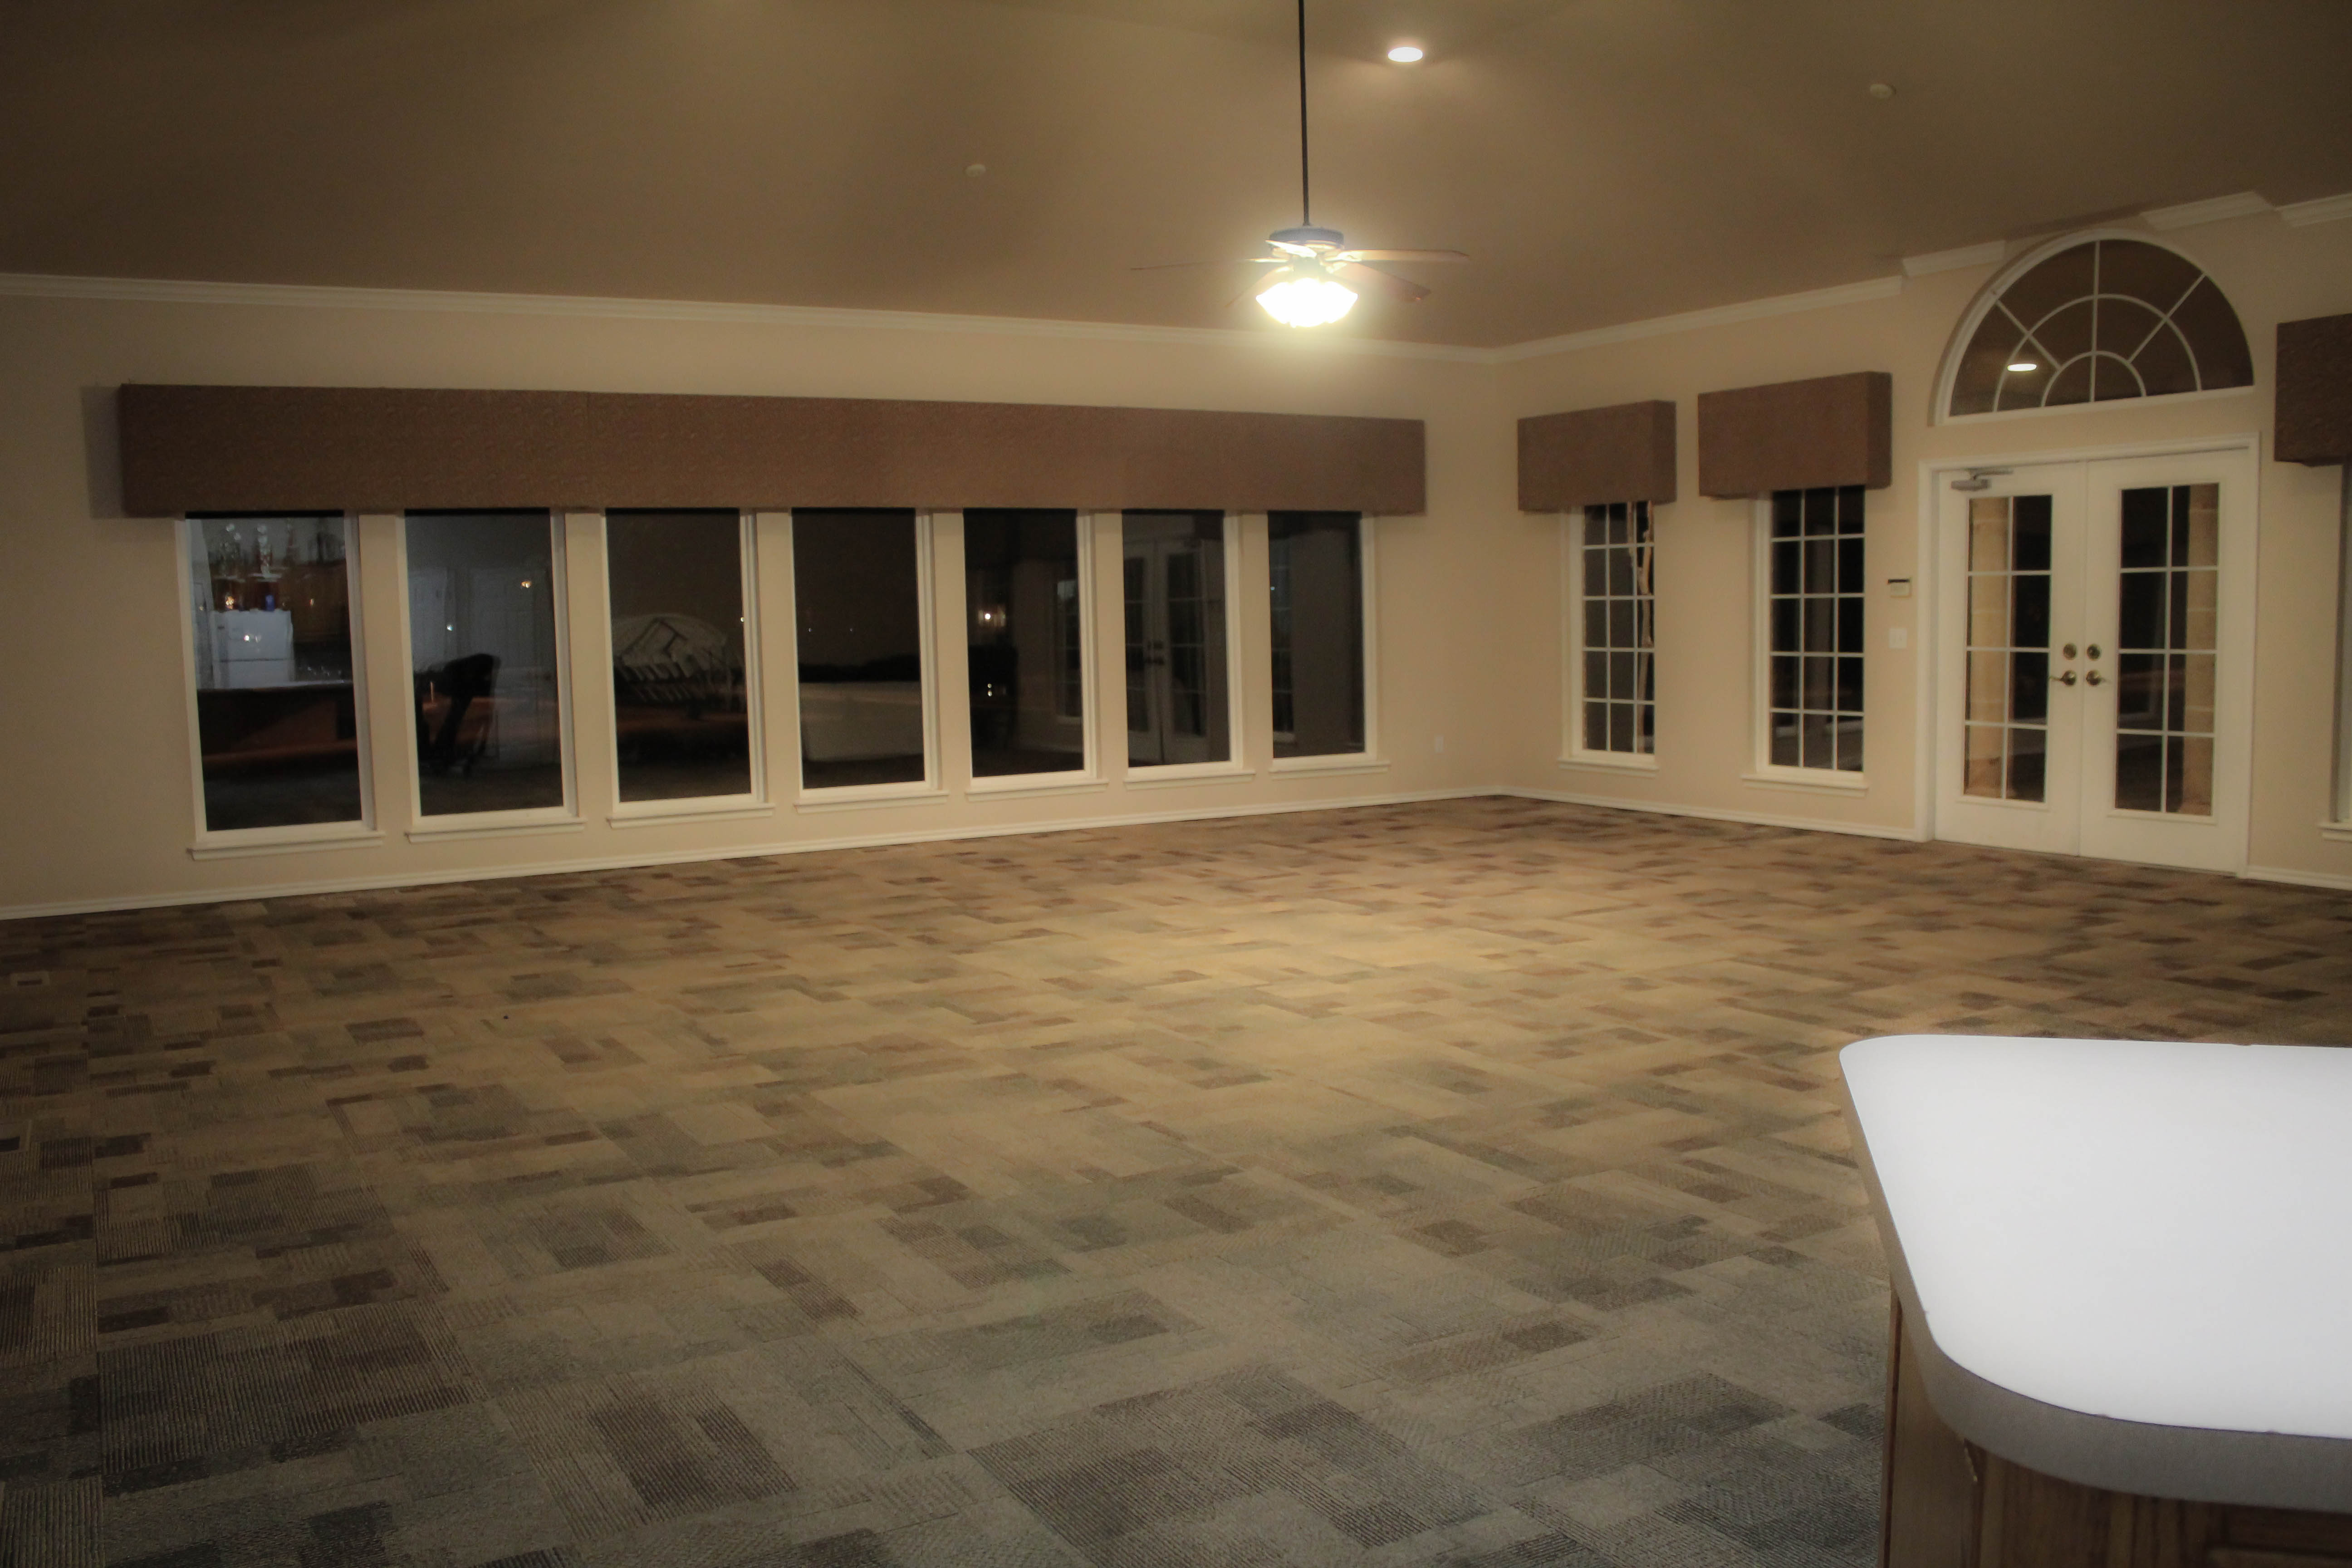 wide shot of inside clubhouse